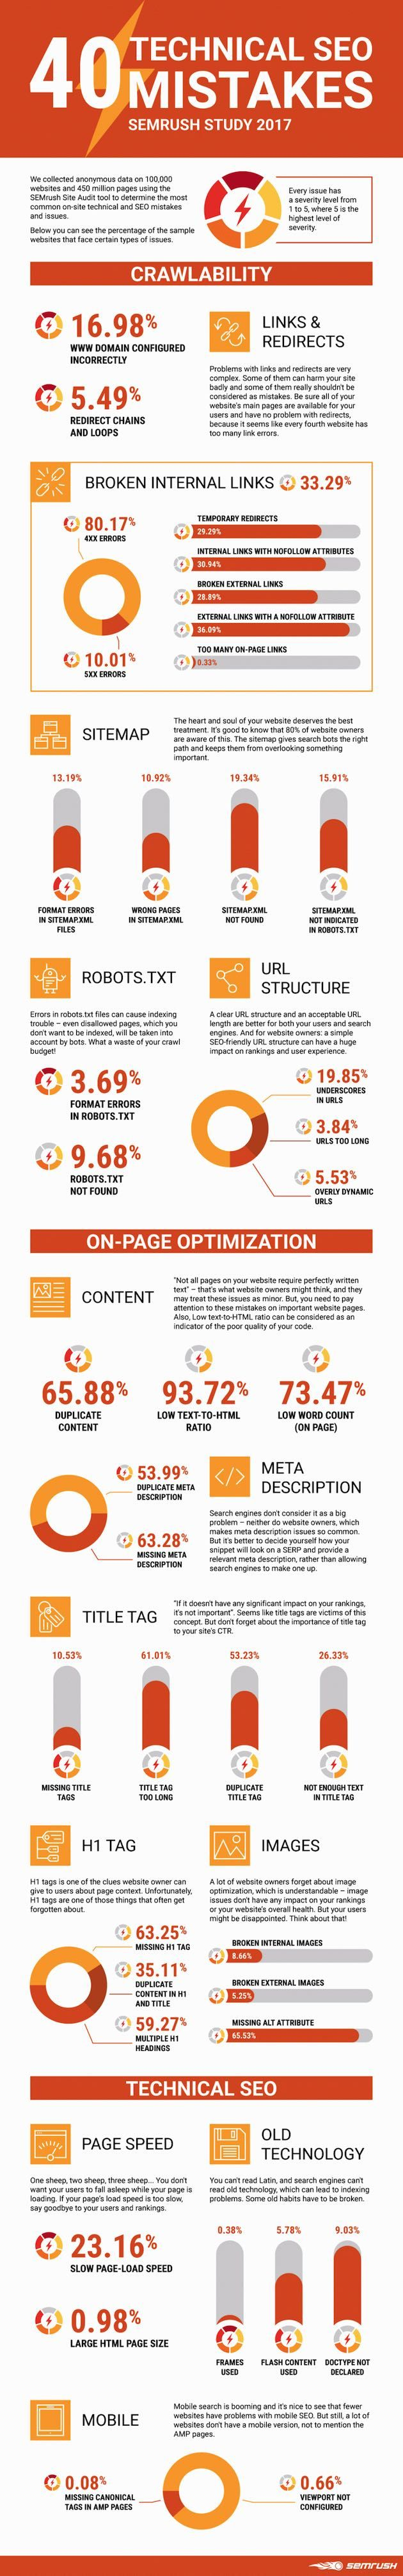 SEO Mistakes: 40 Most Common Search Engine Optimization Slipups   Study